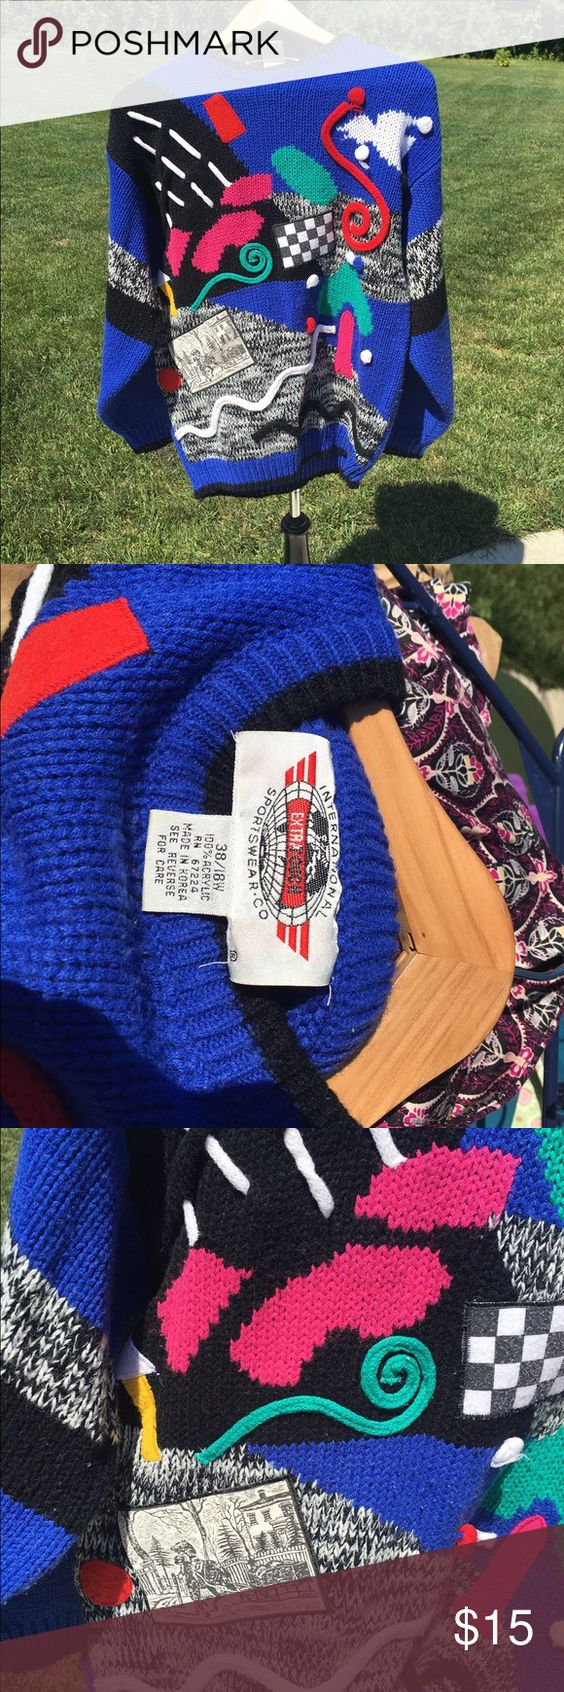 Vintage crazy sweater international sportswear XL Look at the pics!  Crazy vintage sweater.  International Sportswear brand.  Size 18w International Sportswear Sweaters Crew & Scoop Necks